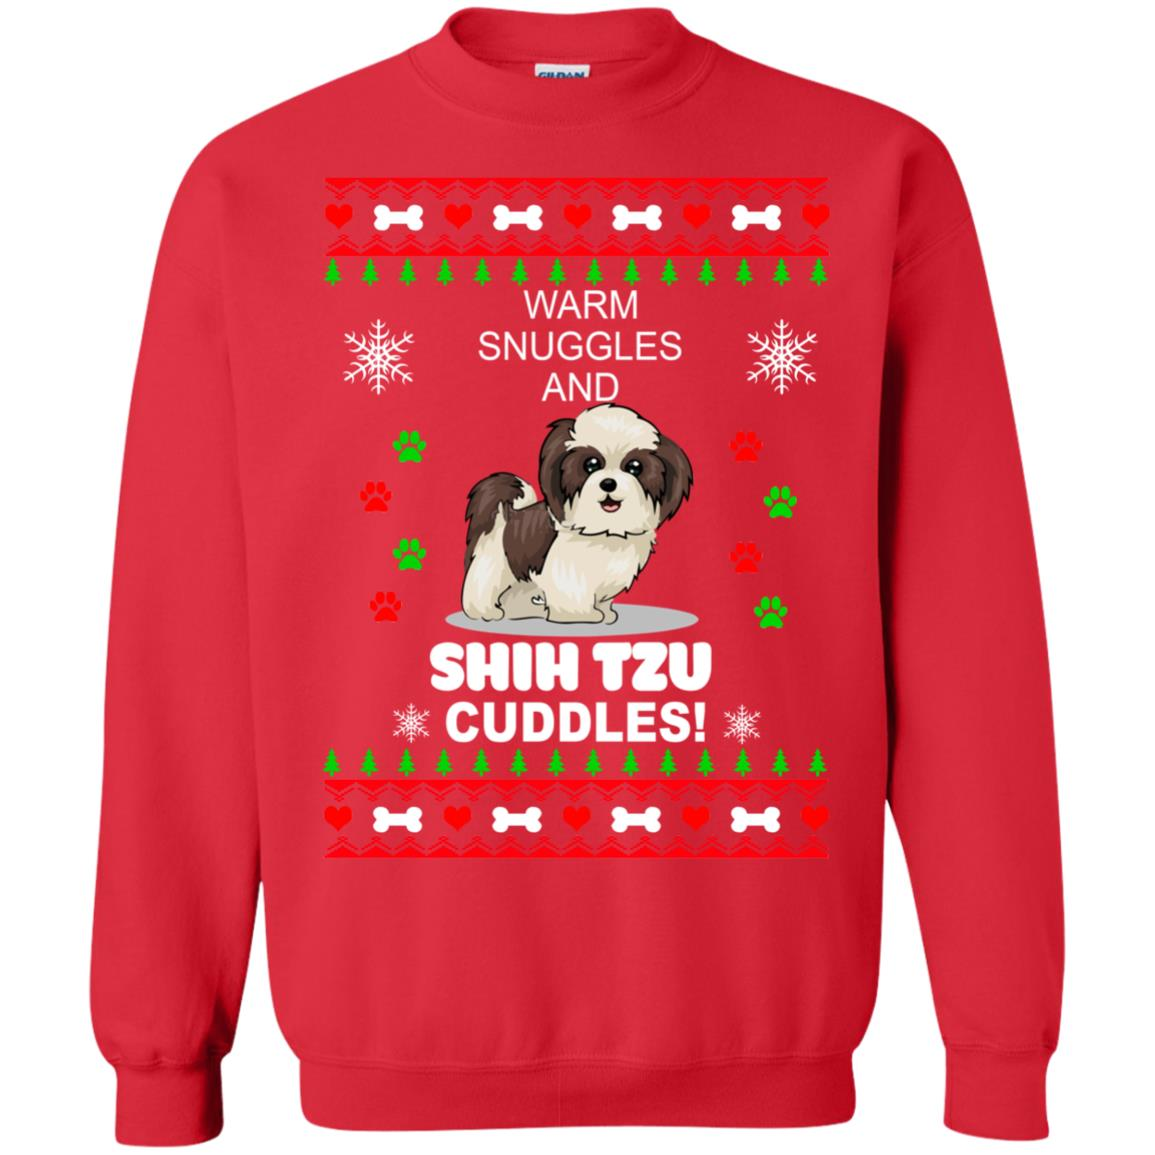 Warm snuggles and ShihTzu cuddles Christmas Sweater, Shirt - image 3988